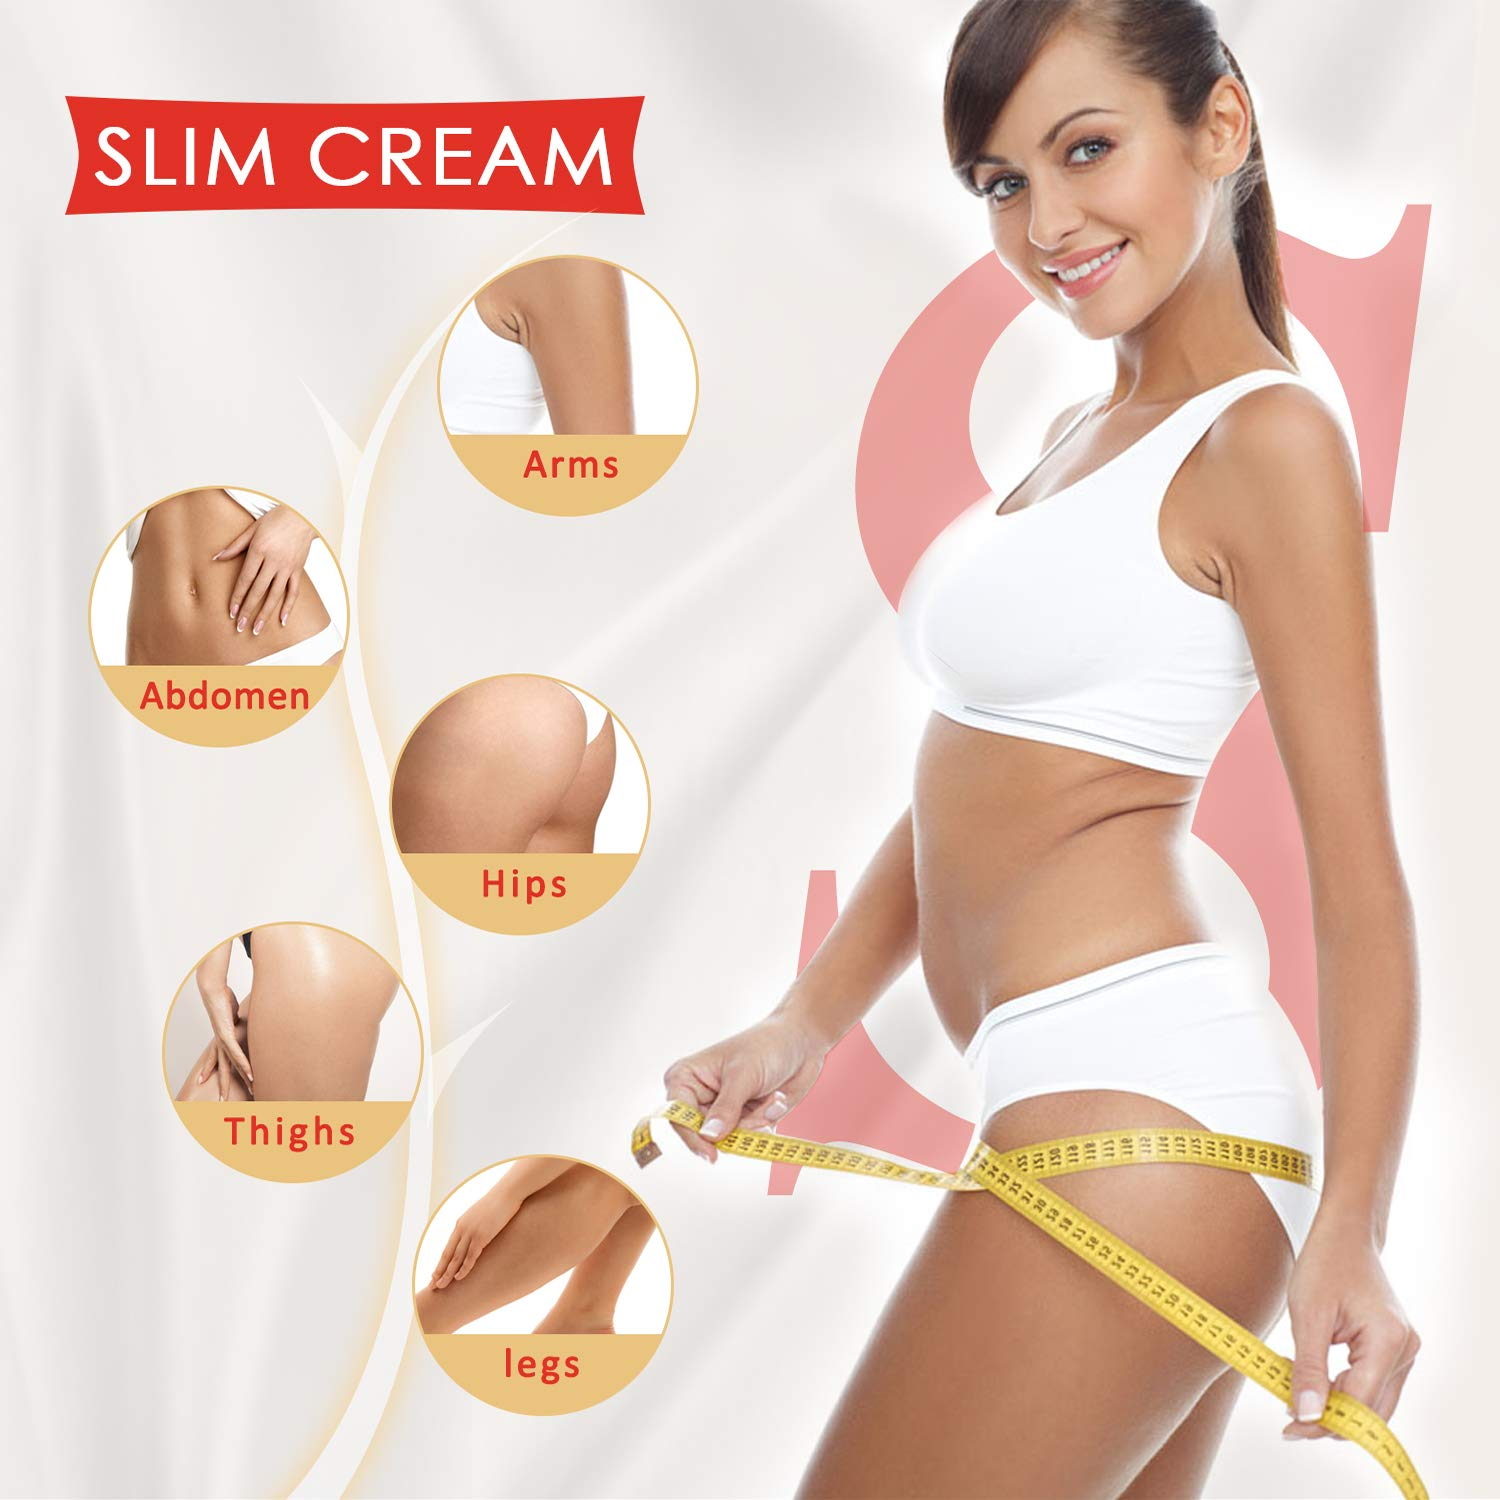 Hot Cream 2Pcs,Fat Burner Sweat Cream - Slimming Cream for Belly,Waist and Thighs